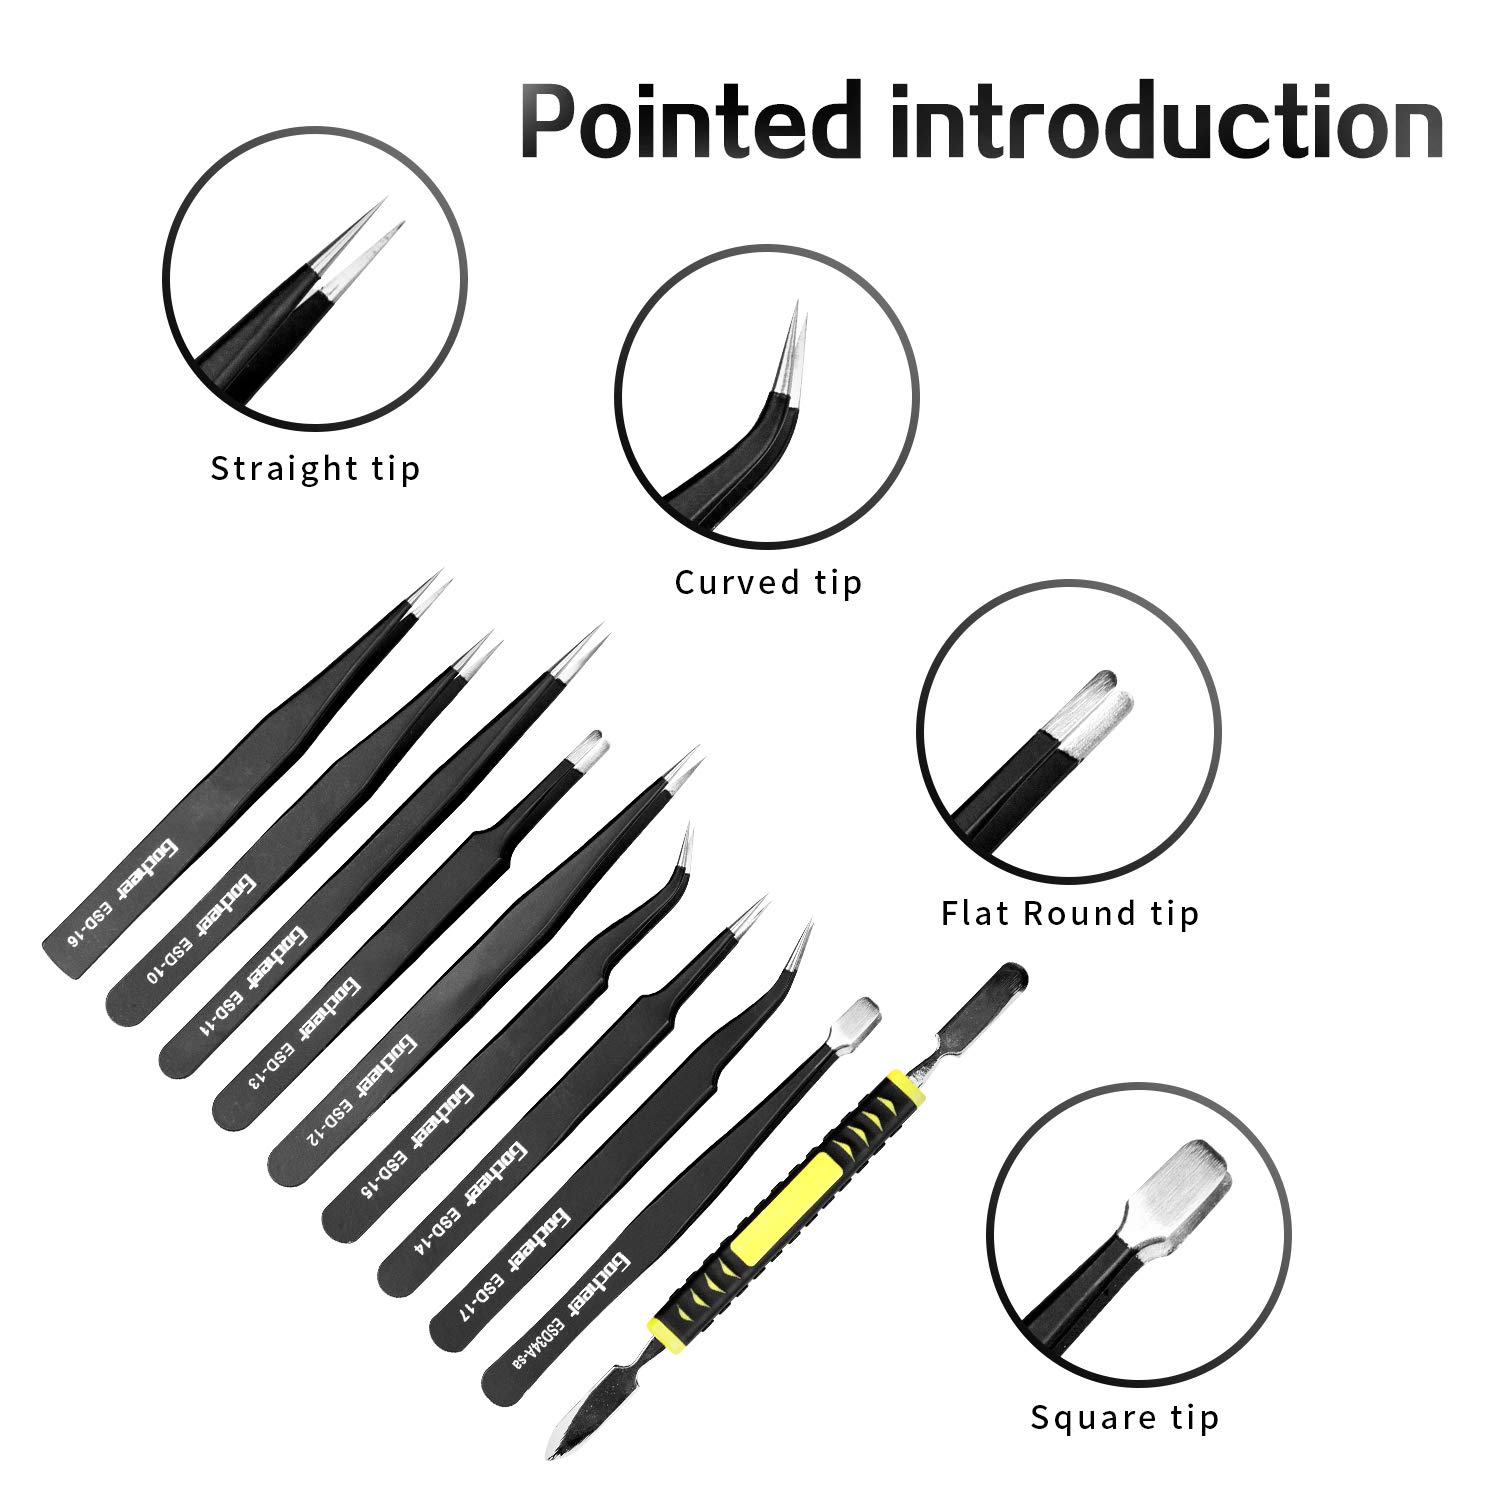 Tweezers,Gocheer 10pcs Tweezers Kit-Anti-Static Stainless Steel Precision ESD Tweezers Set with crowbar repair tool kit for electronics, jewelry making, industrial and precision work,soldering (Black)